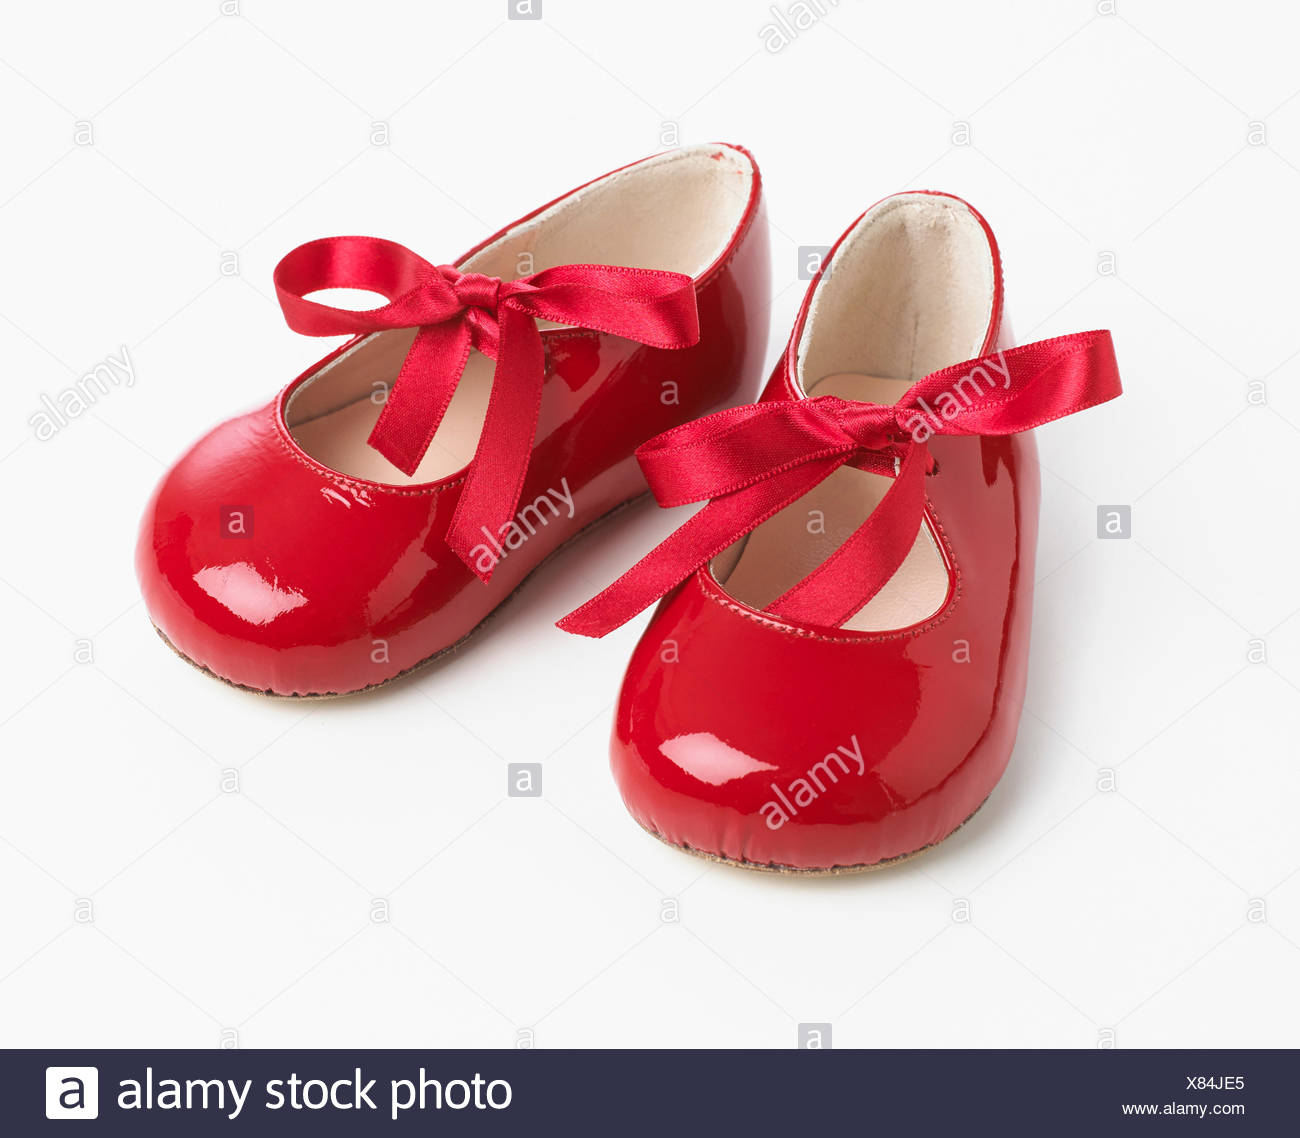 Red patent ribbon tie shoes - Stock Image